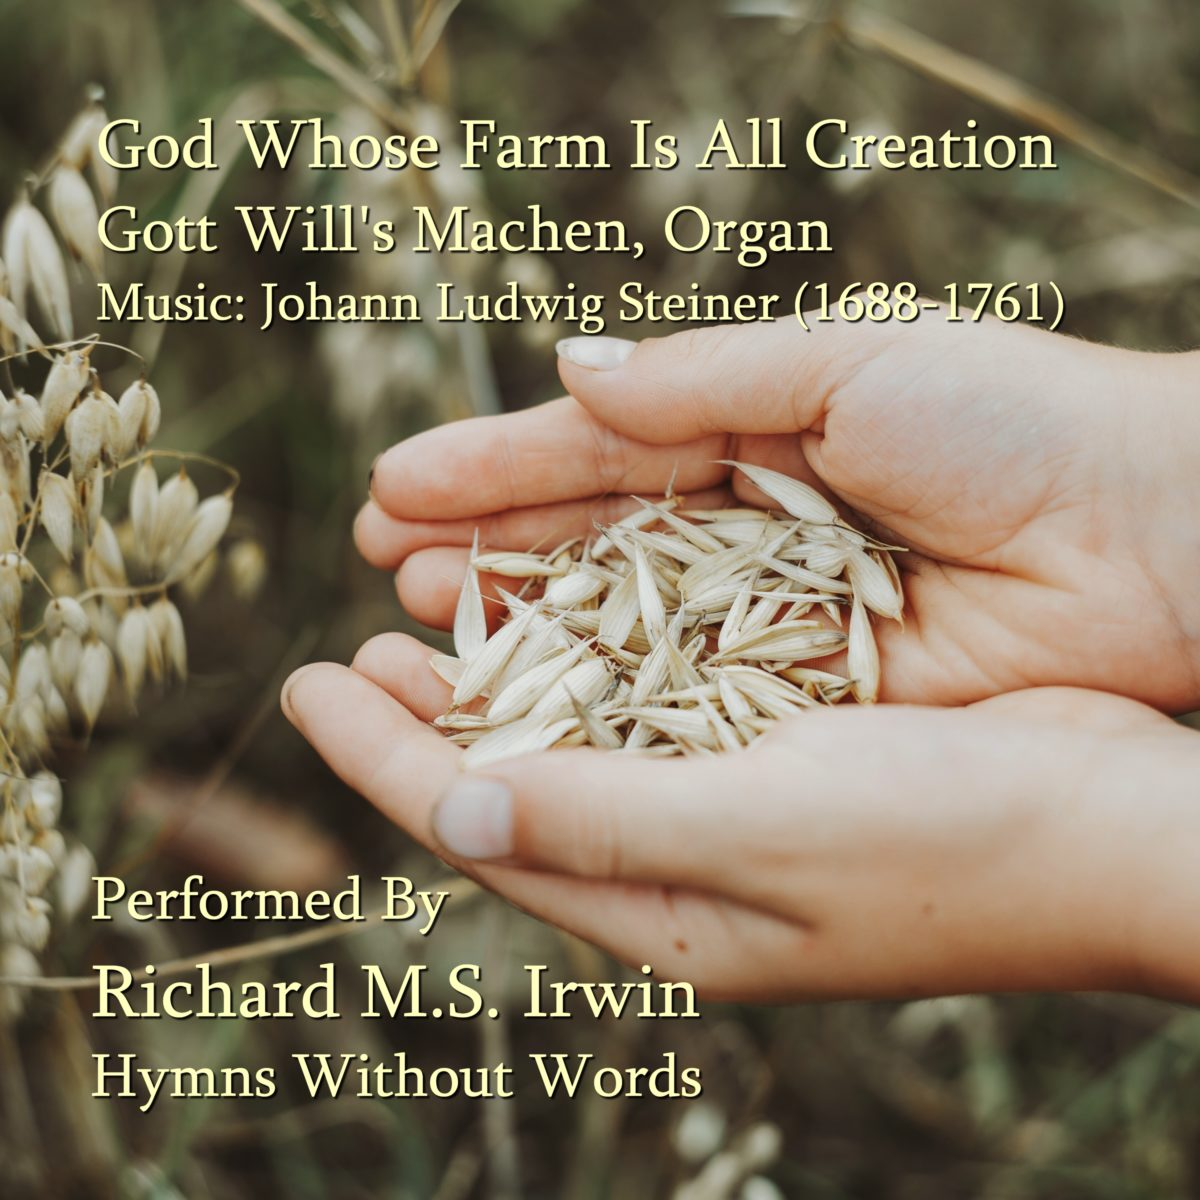 God Whose Farm Is All Creation (Gott Will's Machen – 3 Verses) – Organ